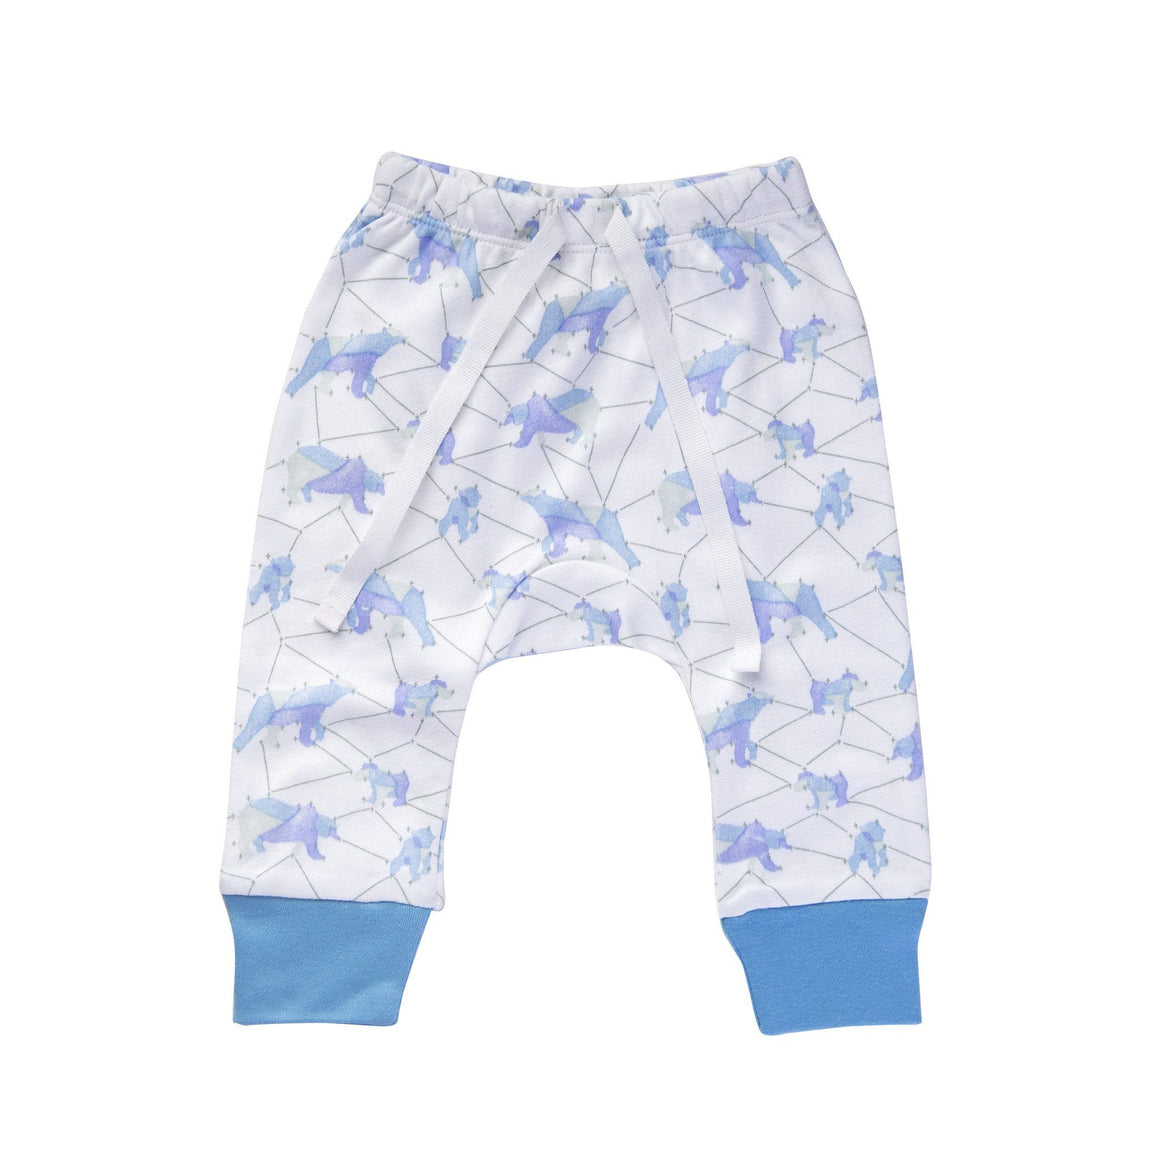 Galaxy Bear Blue Pants Pants Sapling Child